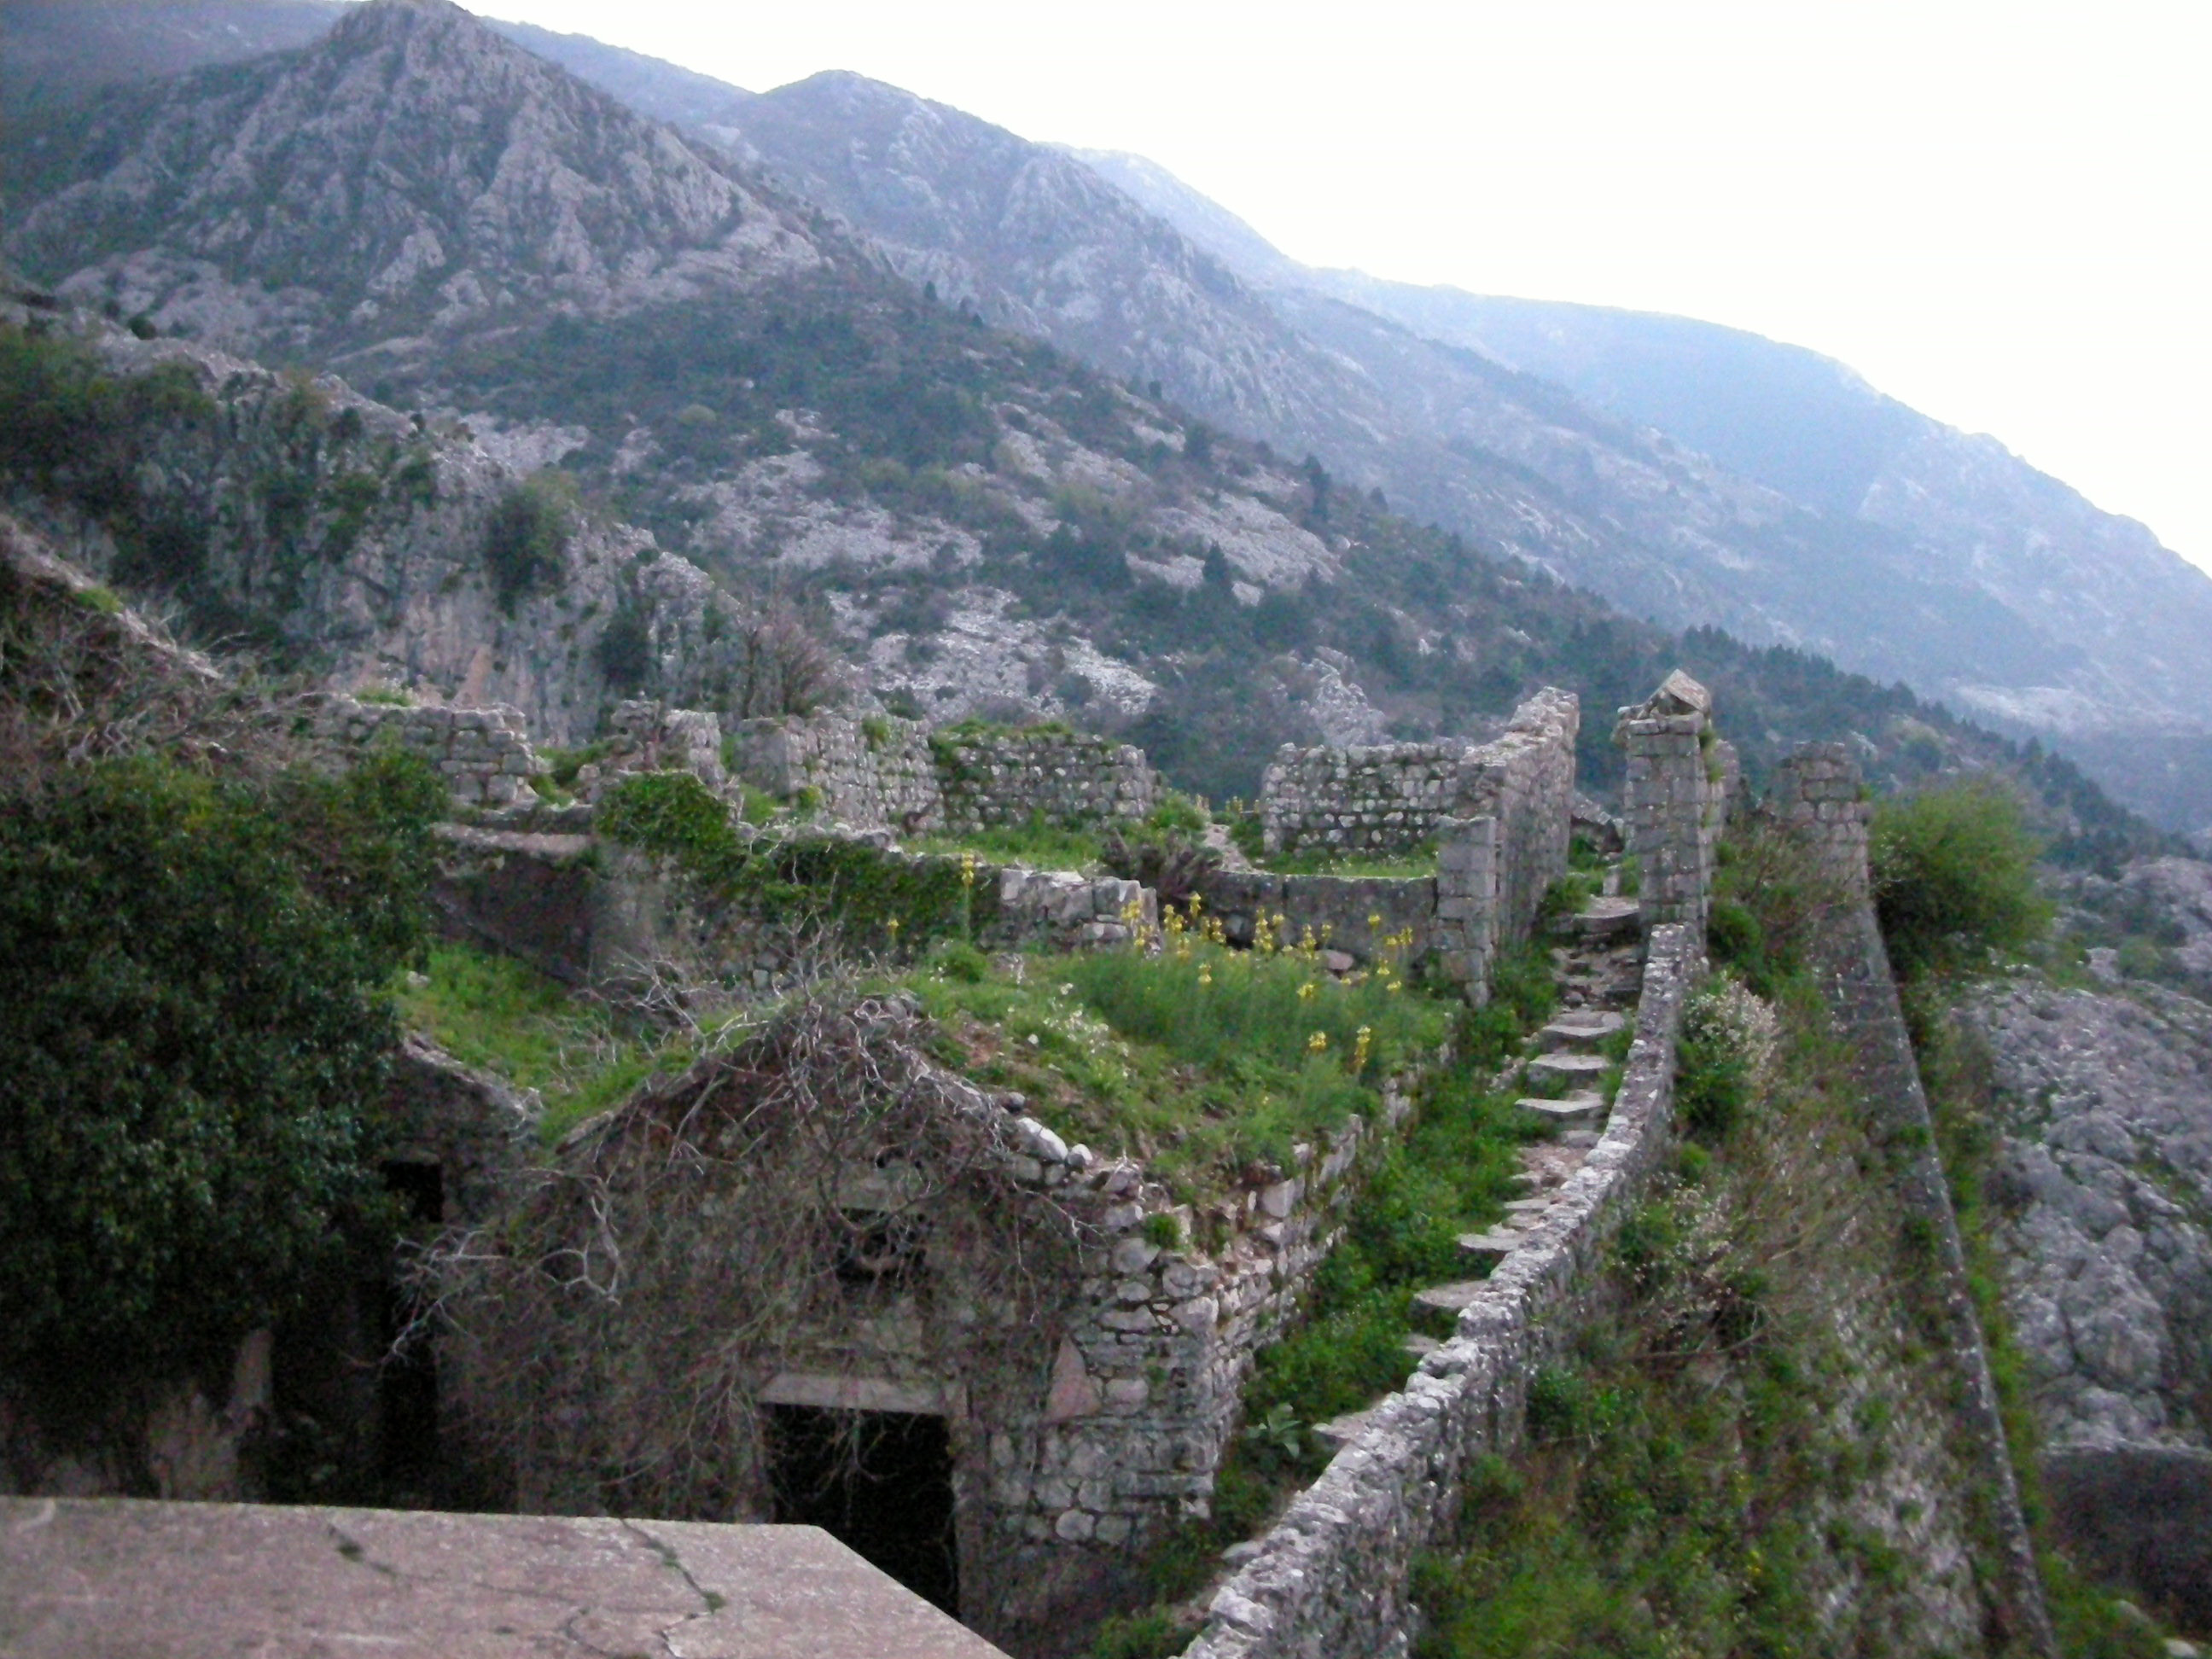 stairs and mountainside stone buildings in kotor montenegro image